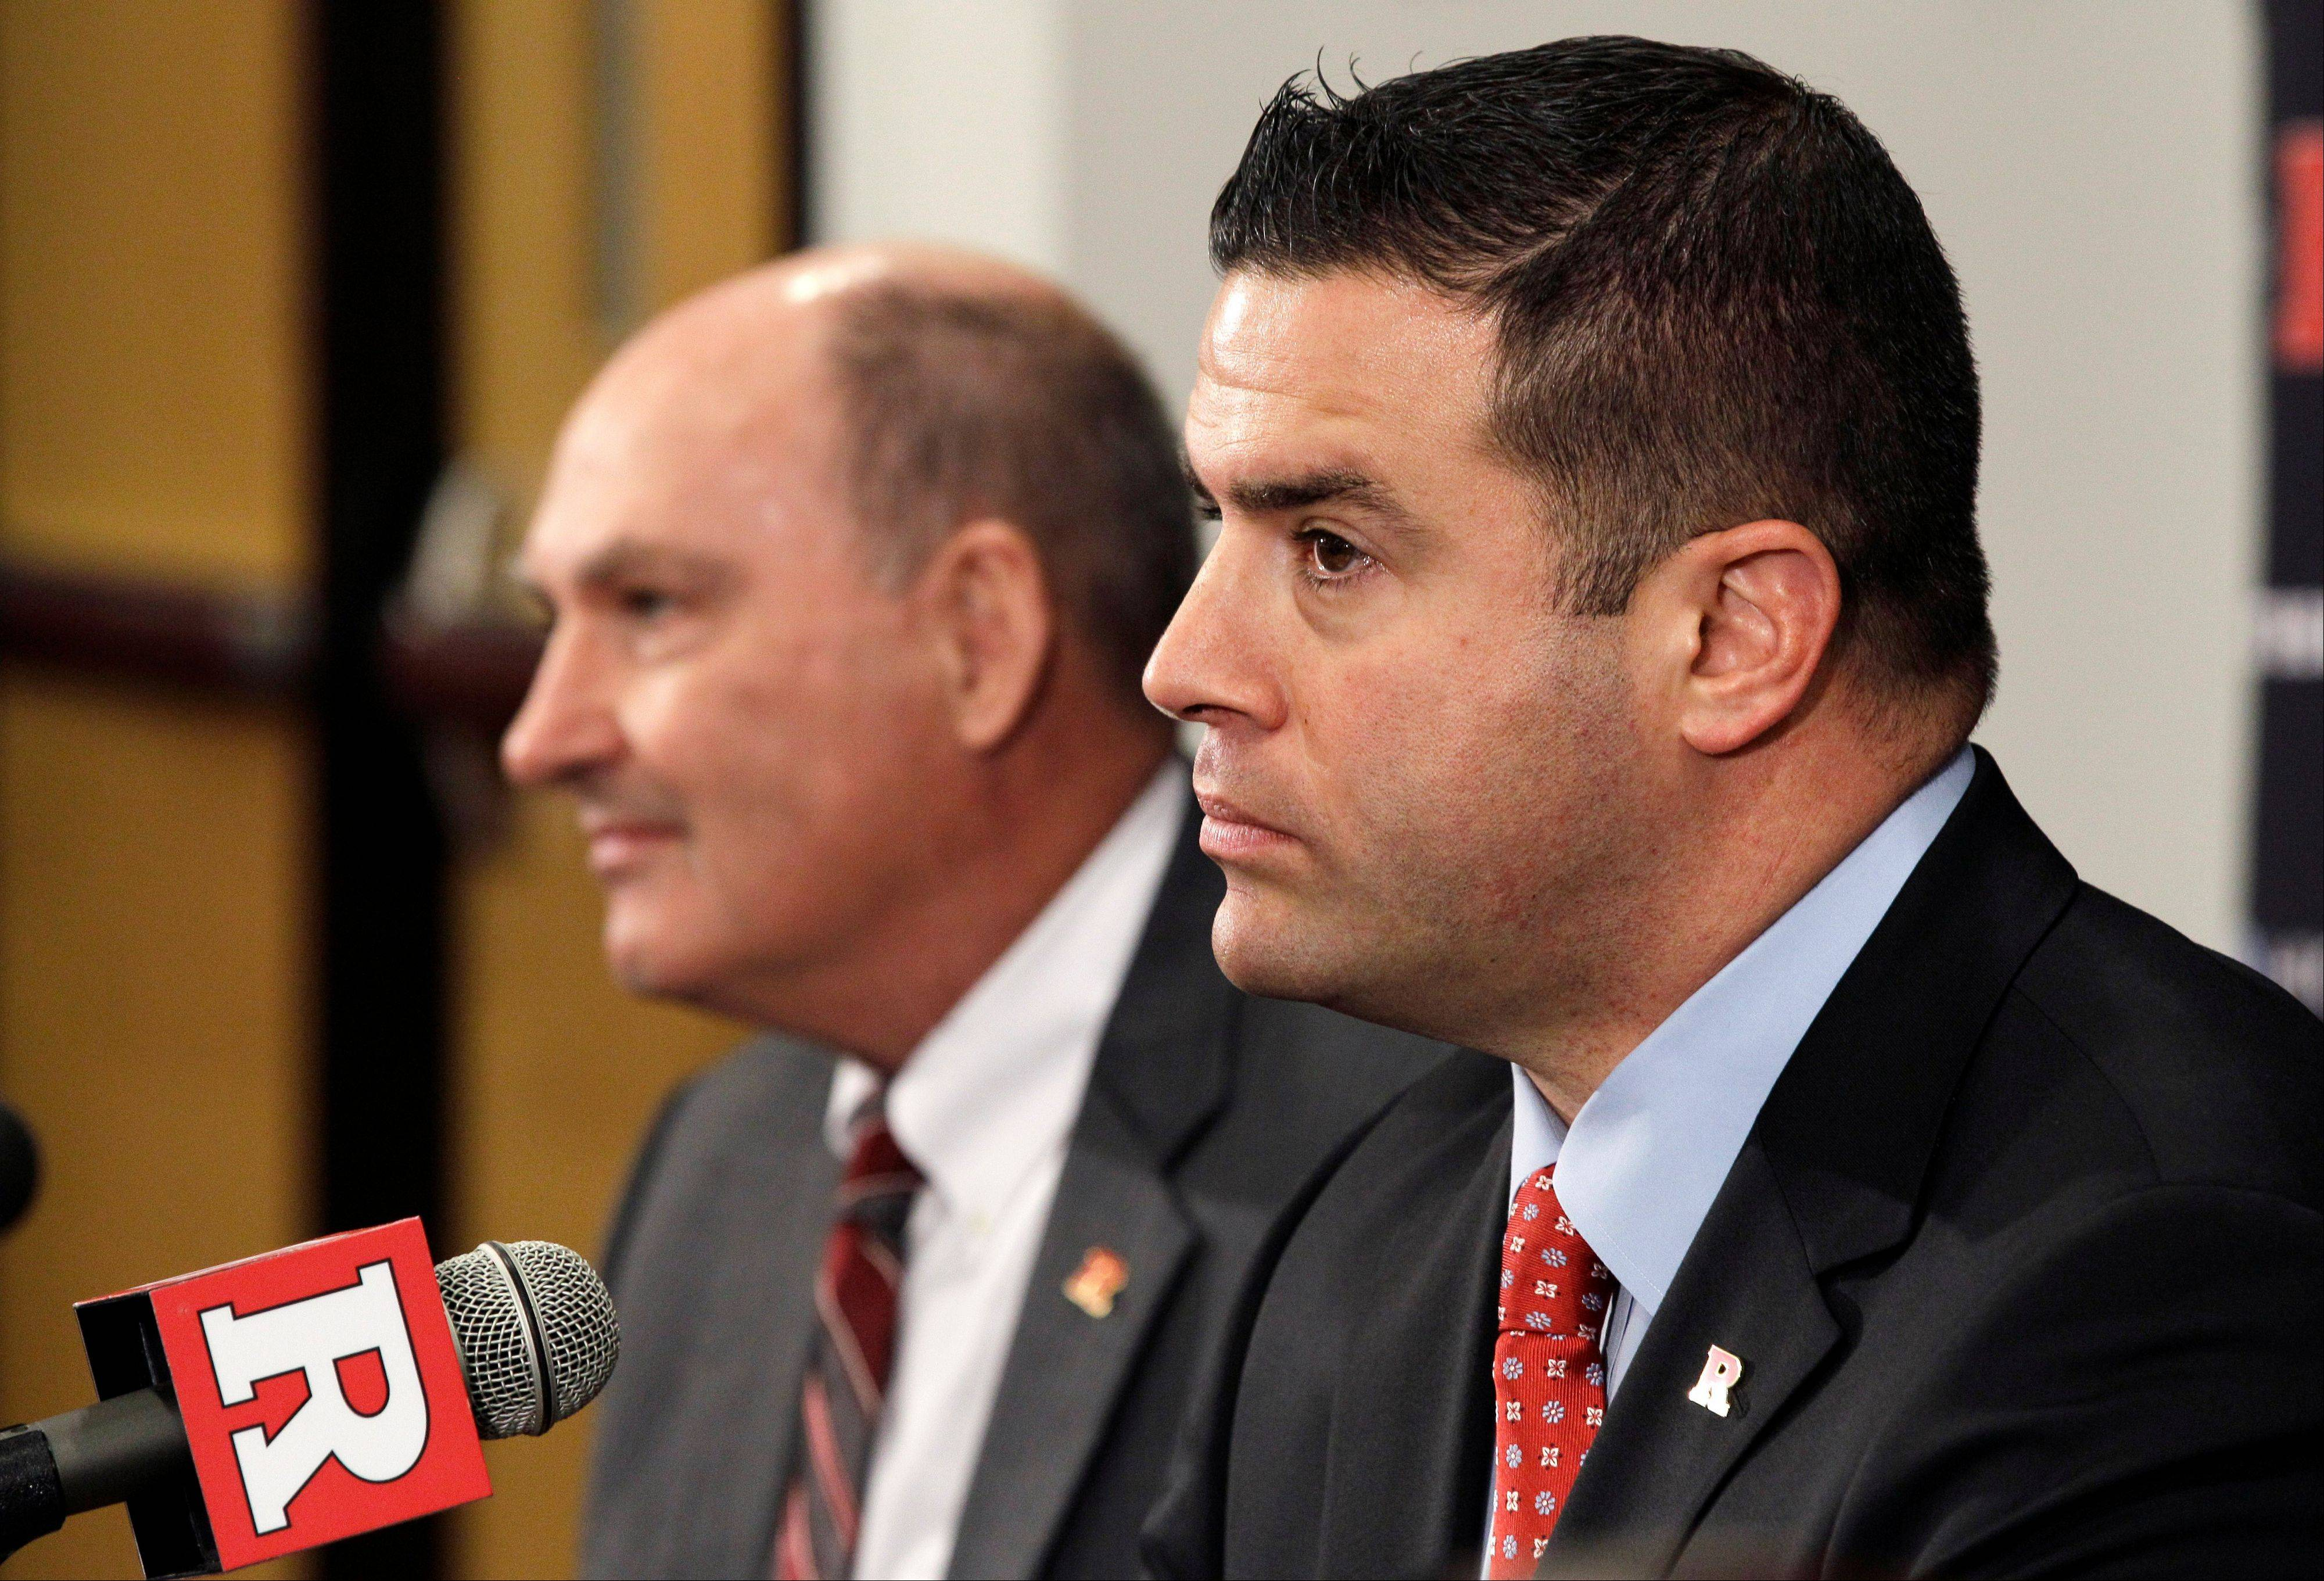 Rutgers director of athletics Tim Pernetti, right, and Big Ten commissioner Jim Delany listen to a question during a news conference Tuesday after they announced that Rutgers will join the Big Ten at a date to be determined.